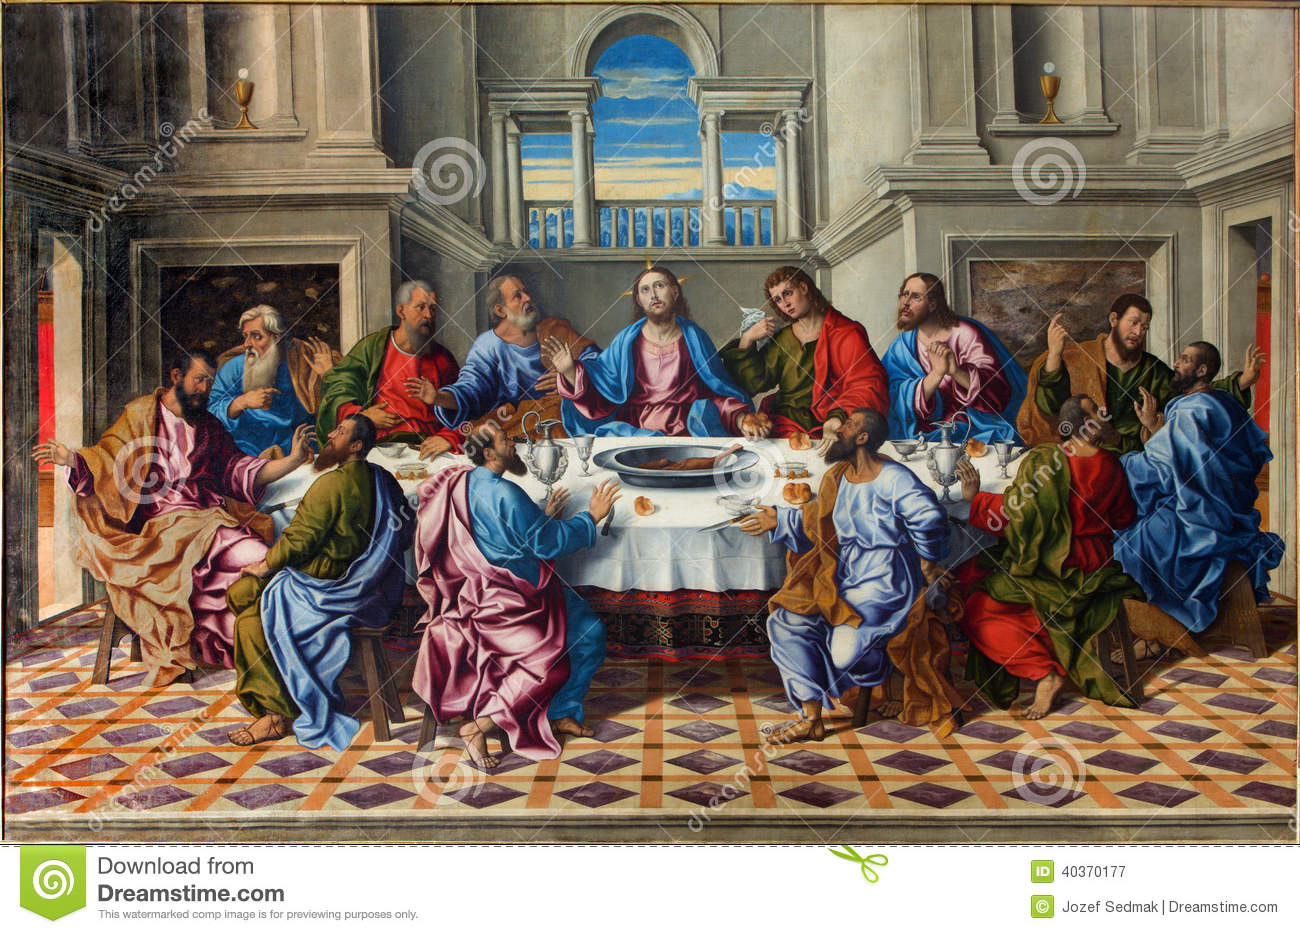 Venice - The Last supper of Christ Ultima cena by Girolamo da Santacroce (1490 - 1556)